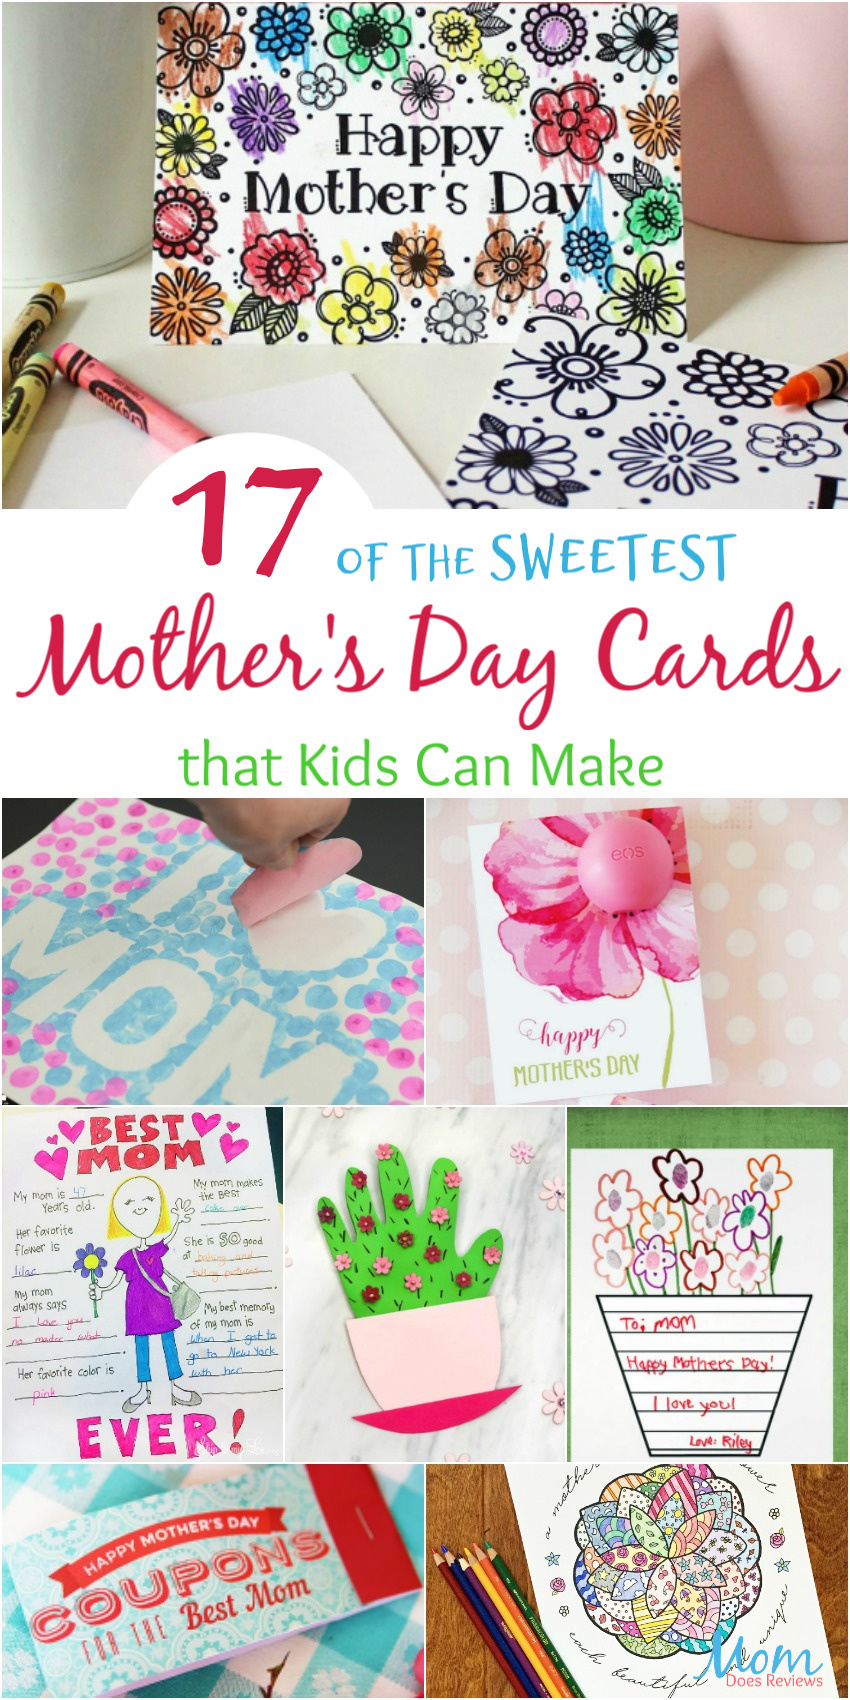 17 of the Sweetest Mother's Day Cards that Kids Can Make #crafts #easycrafts #mothersday #funstuff #DIY